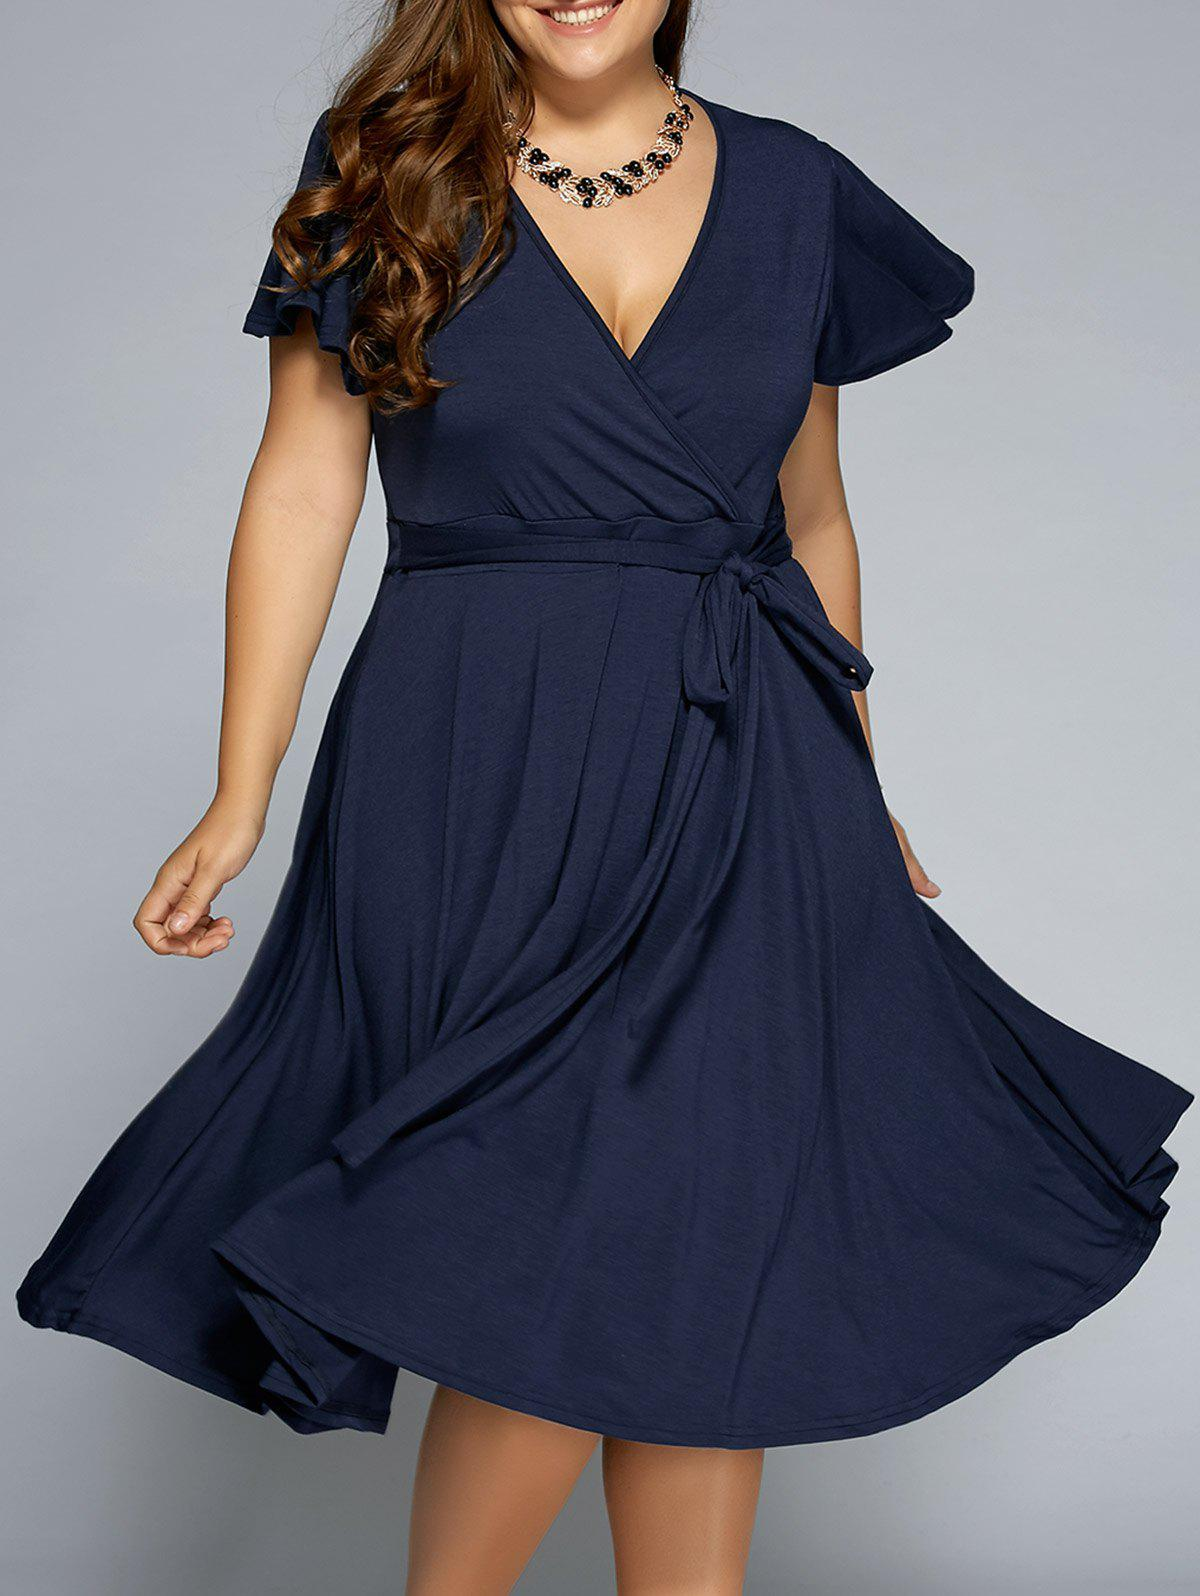 Low Cut A Line Plus Size Surplice Front Tie Swing DressWOMEN<br><br>Size: 9XL; Color: PURPLISH BLUE; Style: Casual; Material: Cotton,Polyester; Silhouette: A-Line; Dresses Length: Mid-Calf; Neckline: V-Neck; Sleeve Length: Short Sleeves; Pattern Type: Solid; With Belt: No; Season: Summer; Weight: 0.5260kg; Package Contents: 1 x Dress;